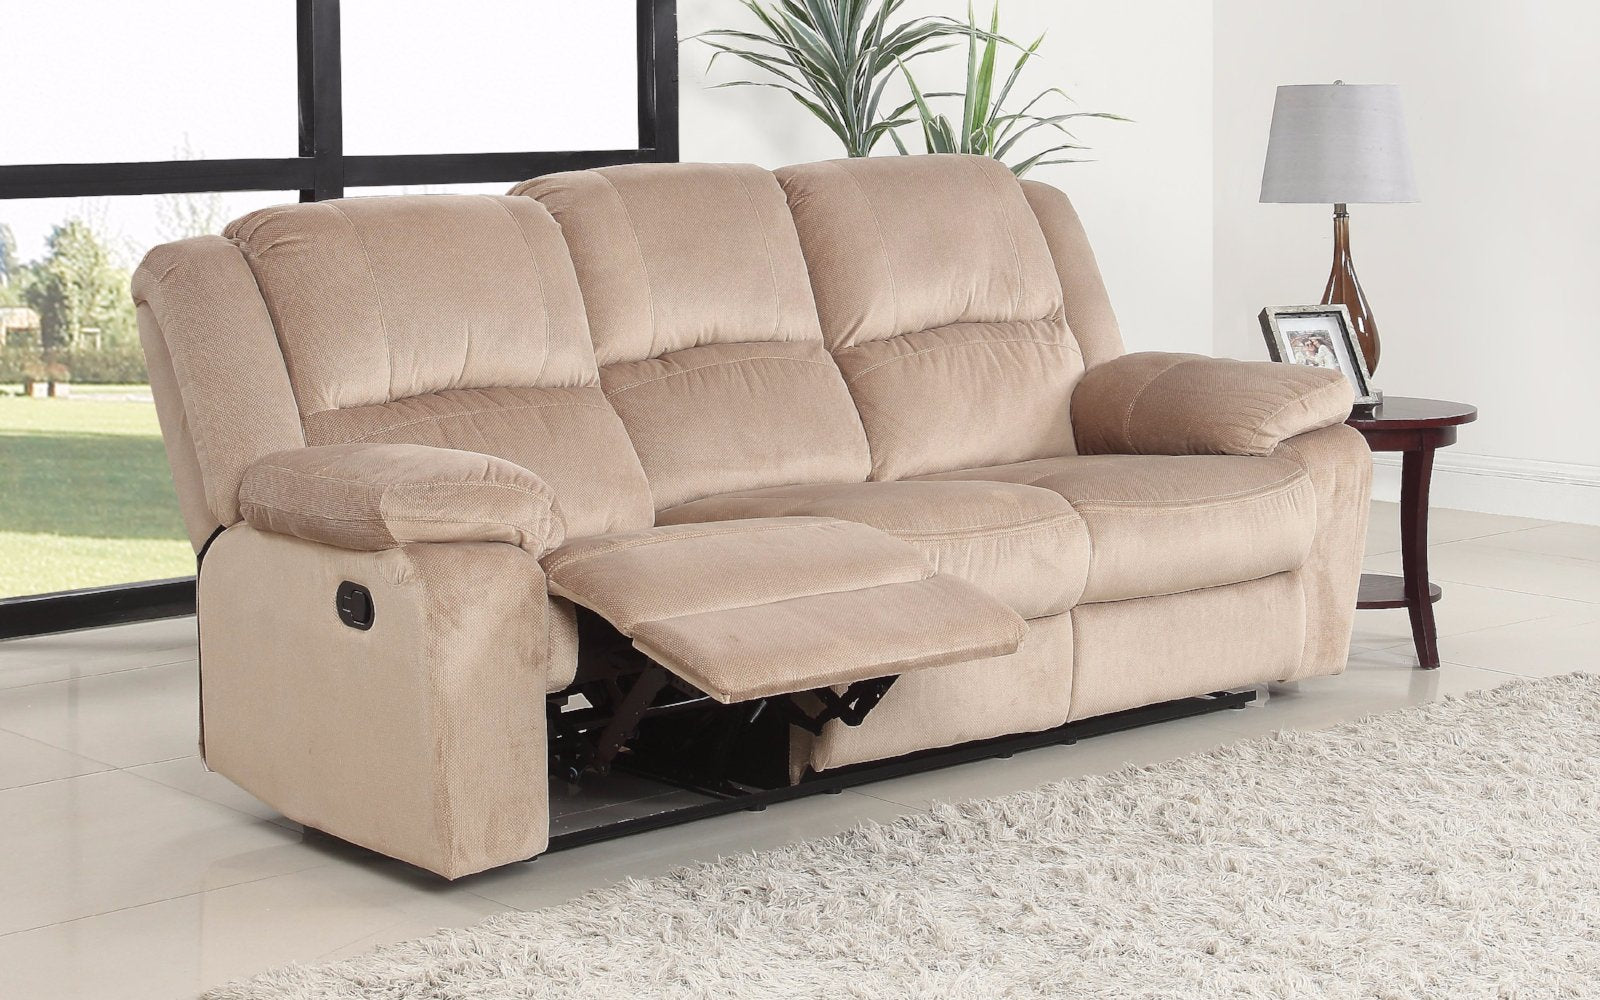 ... Asturias Traditional Classic Microfiber Double Recliner Sofa   Beige  Side ...